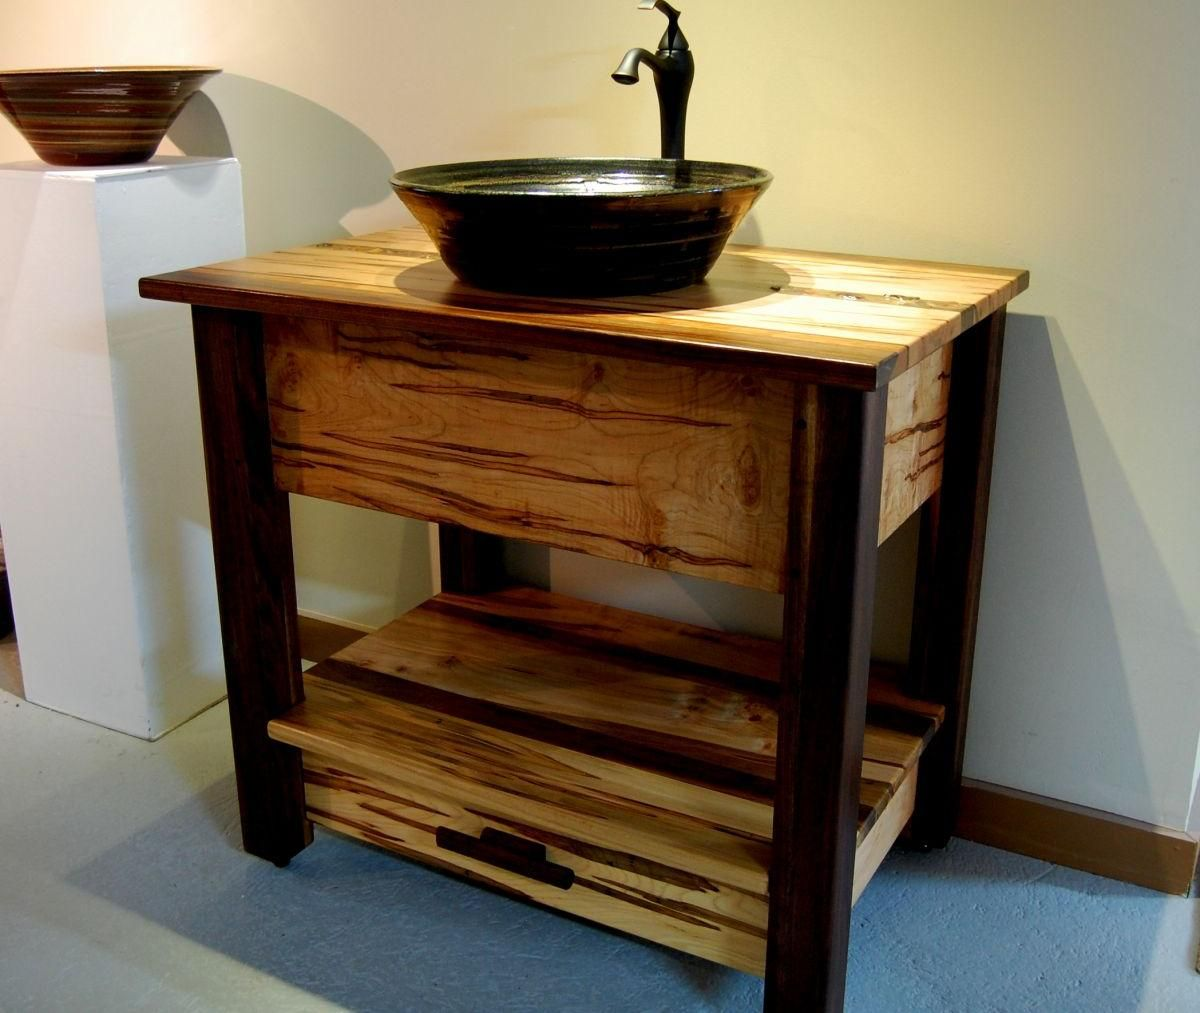 Bathroom Vanities Bath Room Rustic Bathroom Vanities And Sinks 24 Inch Vessel Comely Wooden Bathroom Vanity Rustic Bathroom Vanities Vintage Bathroom Vanities